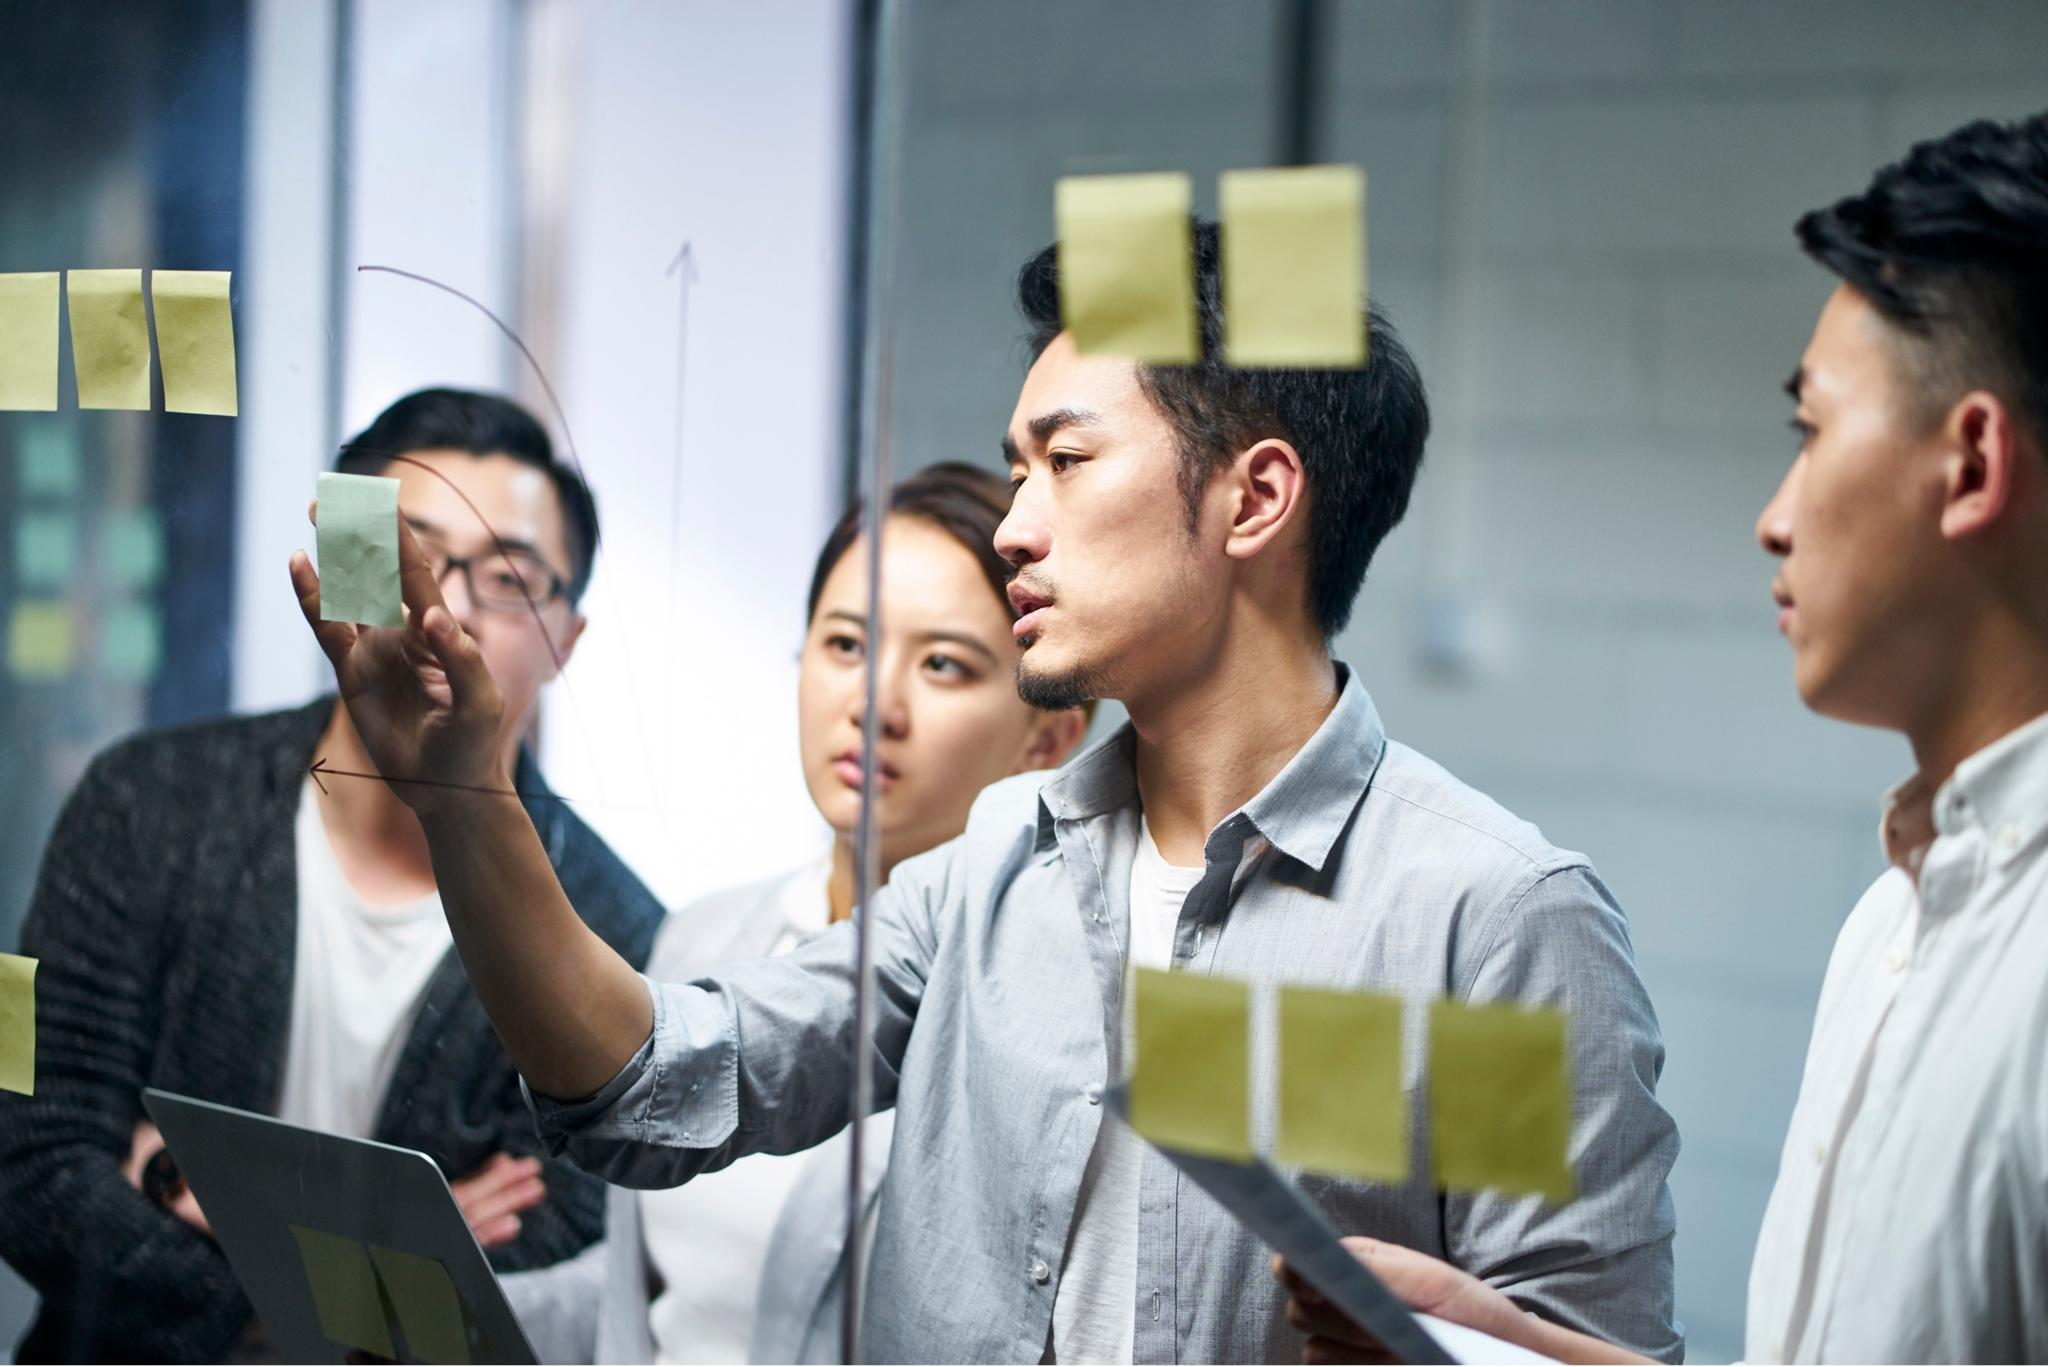 Businessman putting a adhesive note on glass in office during team meeting, formulating business strategies.